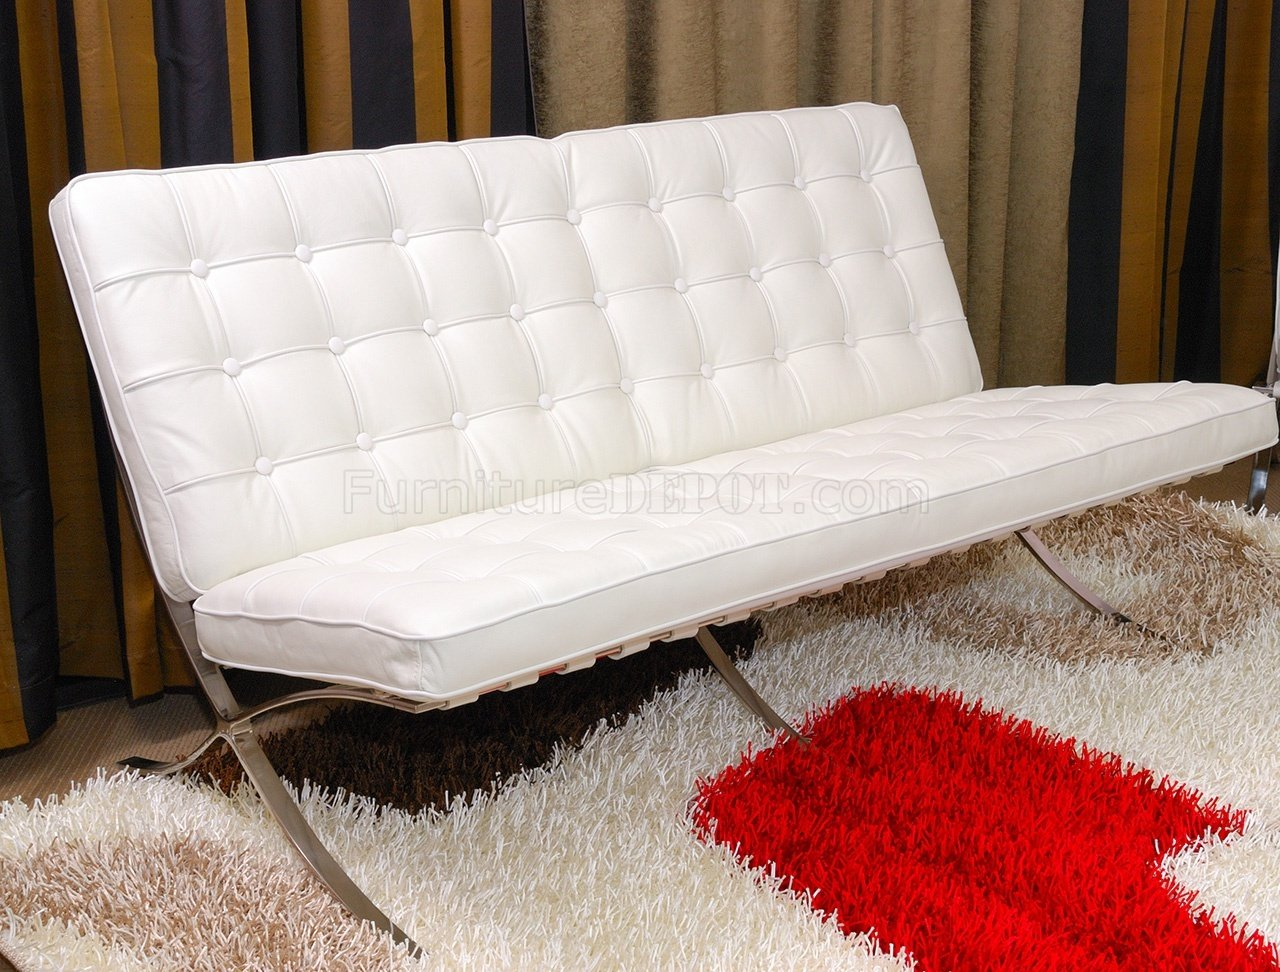 tufted club sofa bed target nz white button full leather modern living room